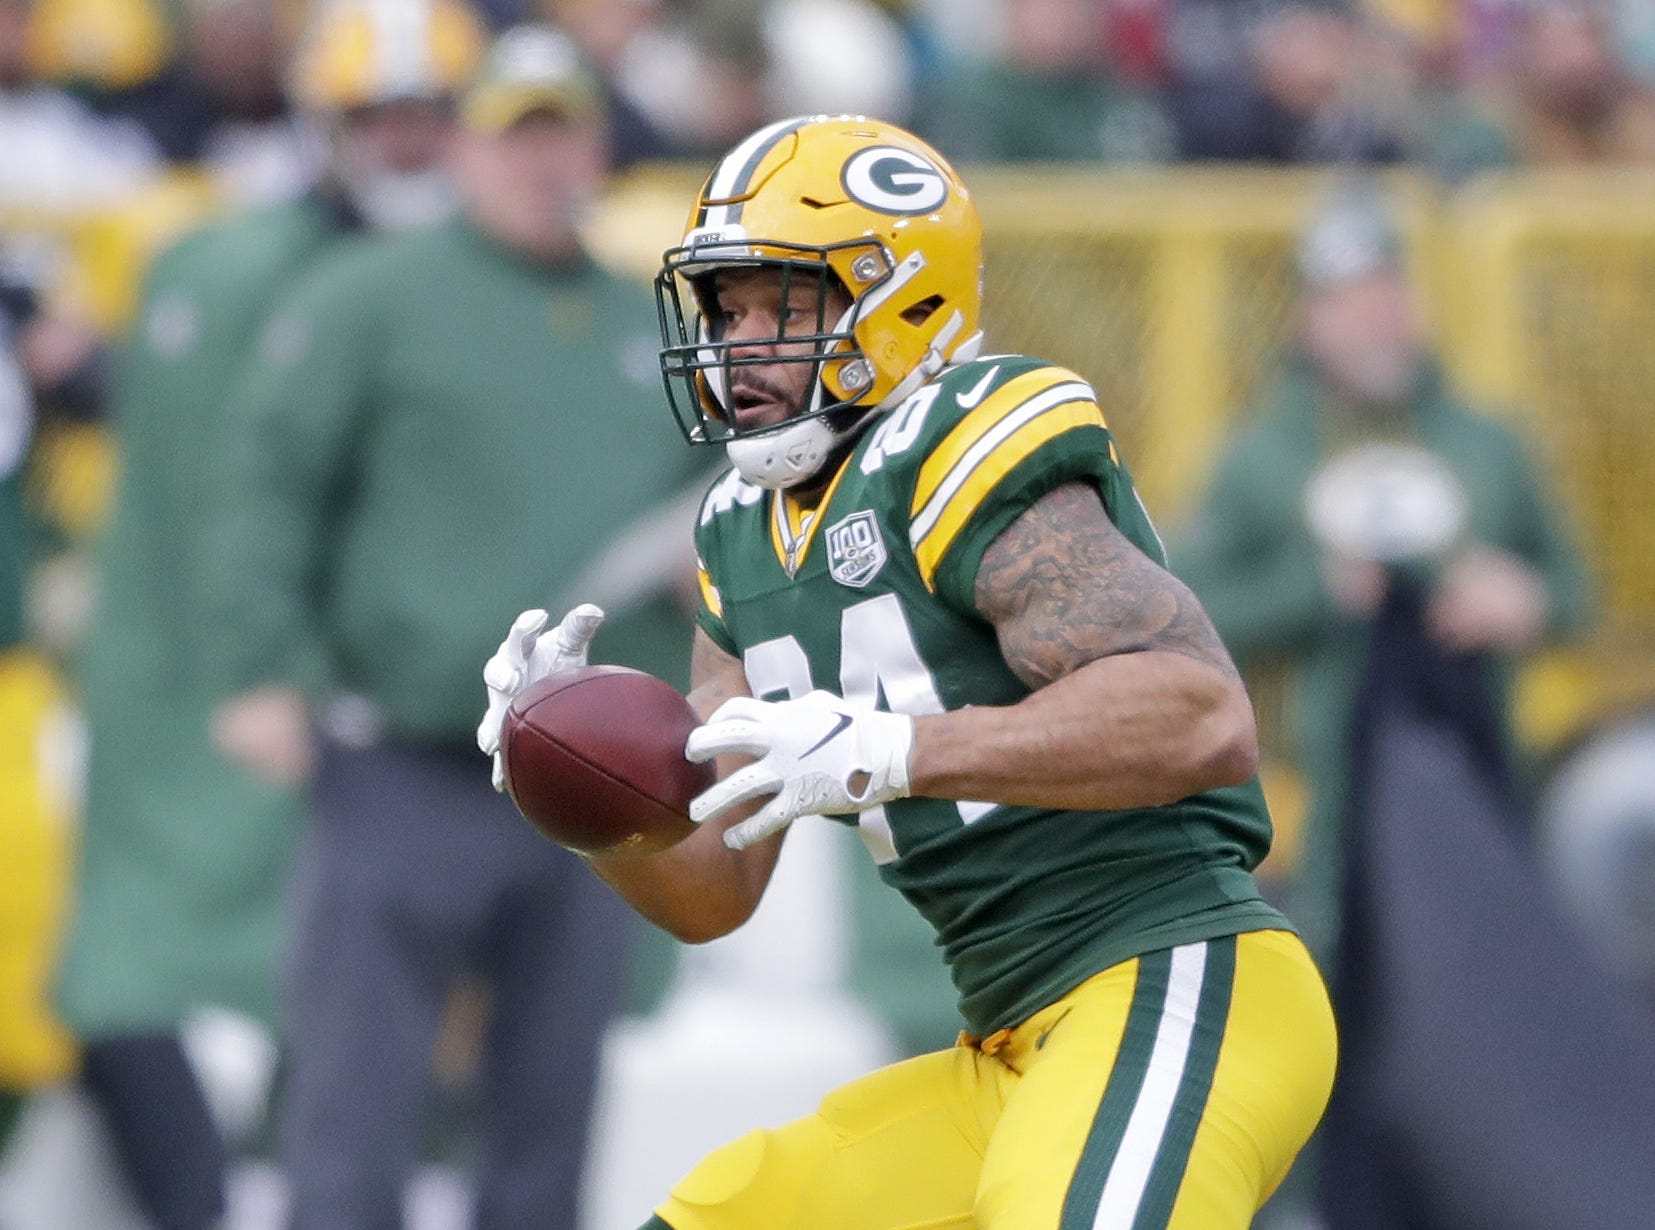 Green Bay Packers tight end Lance Kendricks (84) drops a short pass against the Detroit Lions at Lambeau Field Sunday, December 30, 2018 in Green Bay, Wis.